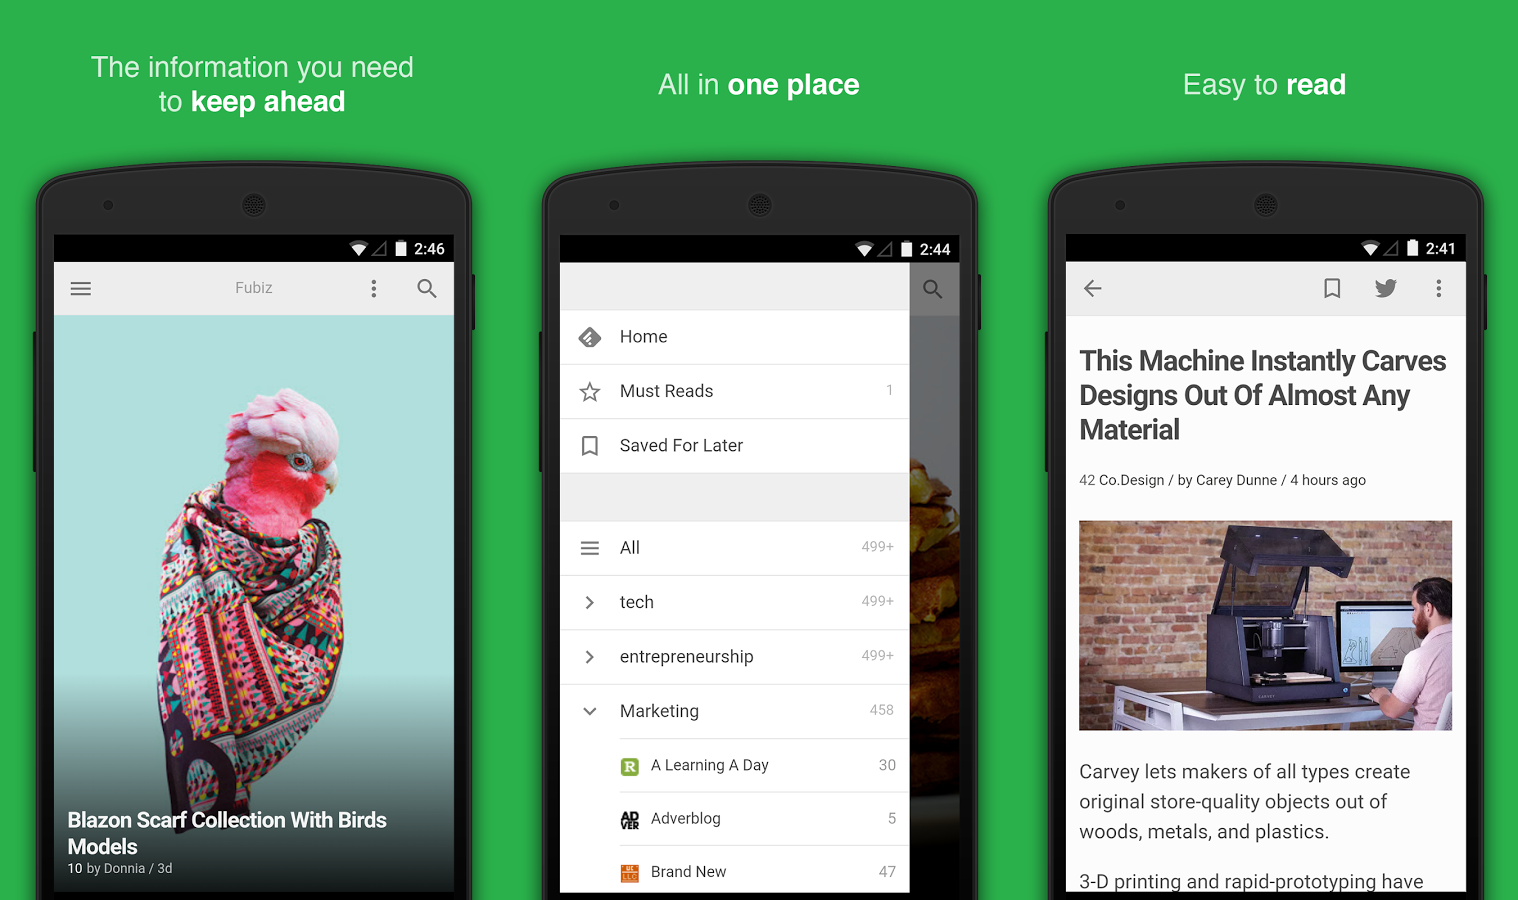 10 Best Rss Readers For Android In 2018 Phandroid